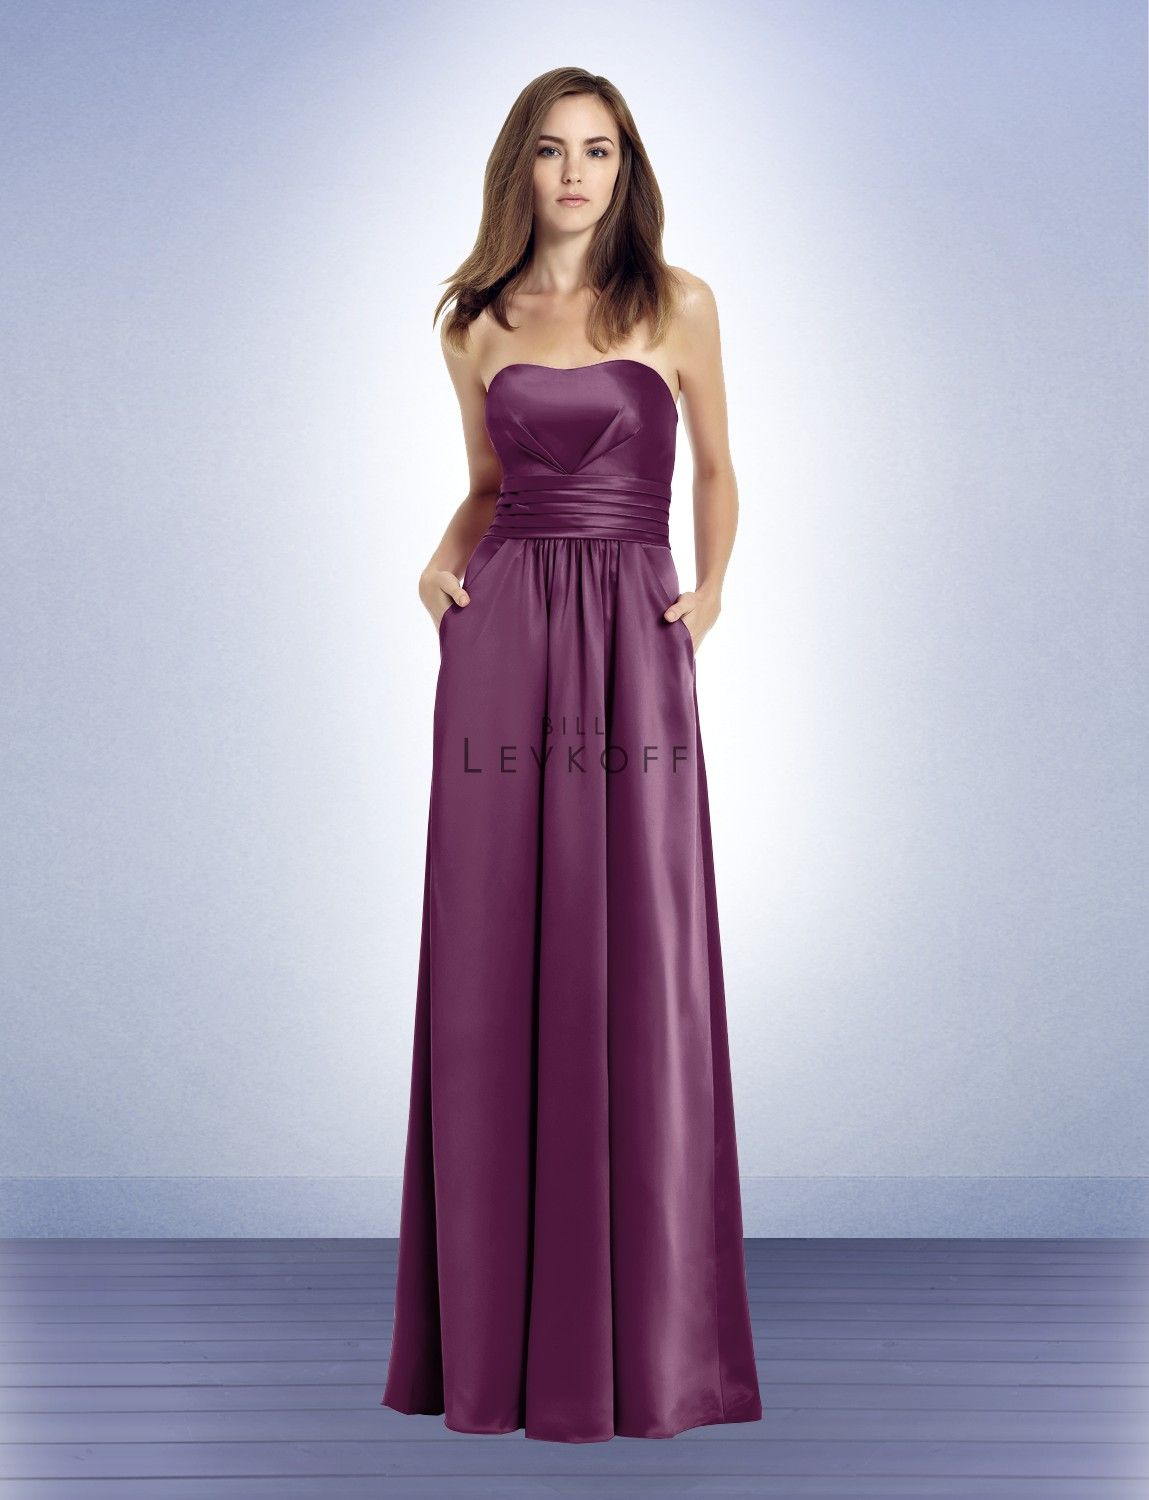 Wedding dresses with purple accents  Bill Levkoff Bridesmaid Dress Style  long in watermelon